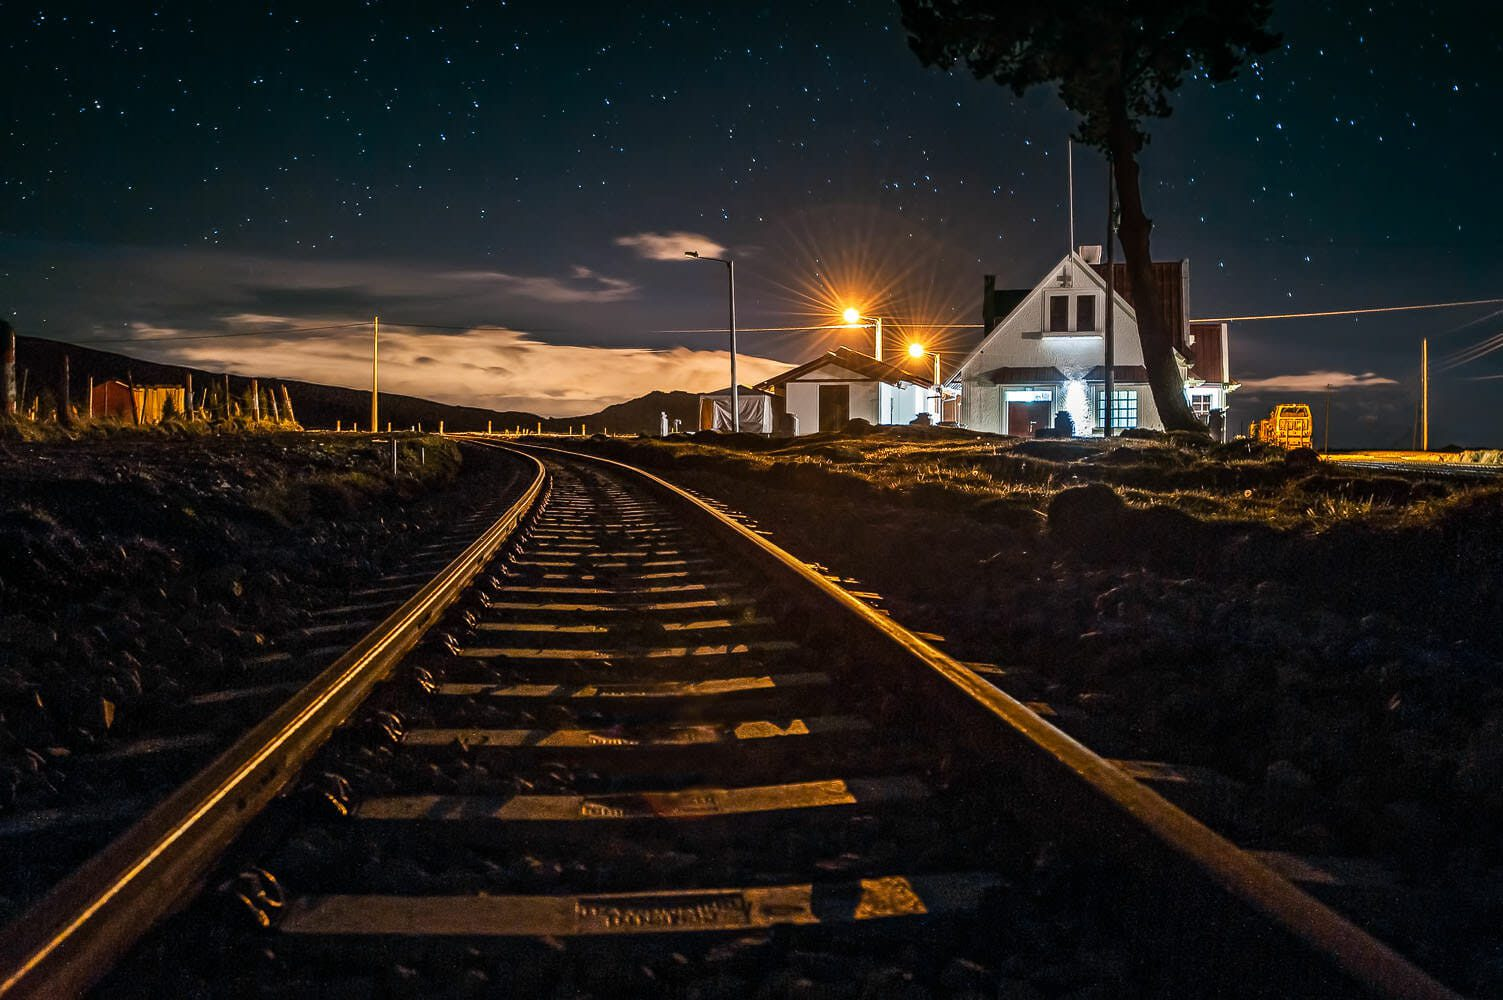 Starry night at the highest railway station in Ecuador